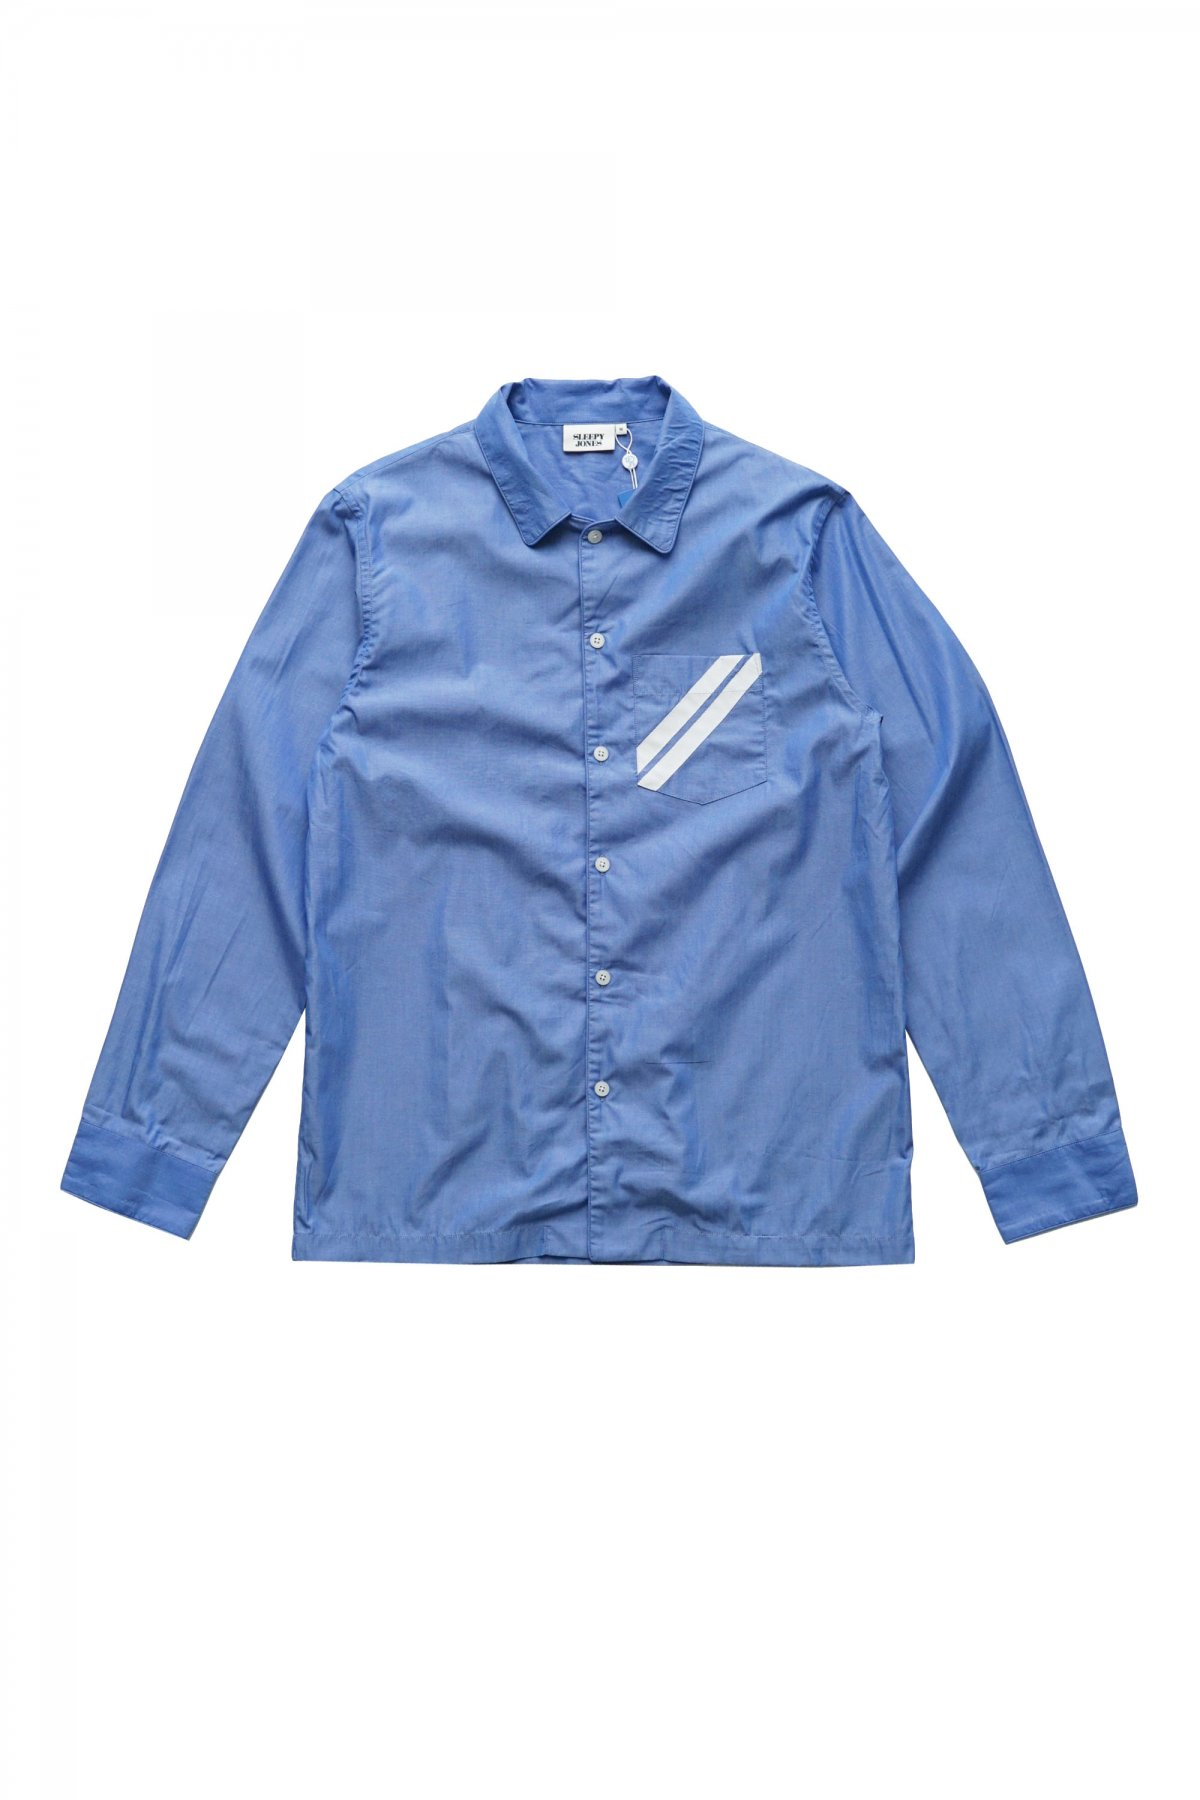 SLEEPY JONES - HENRY TRAINER SHIRT - POPLIN BLUE